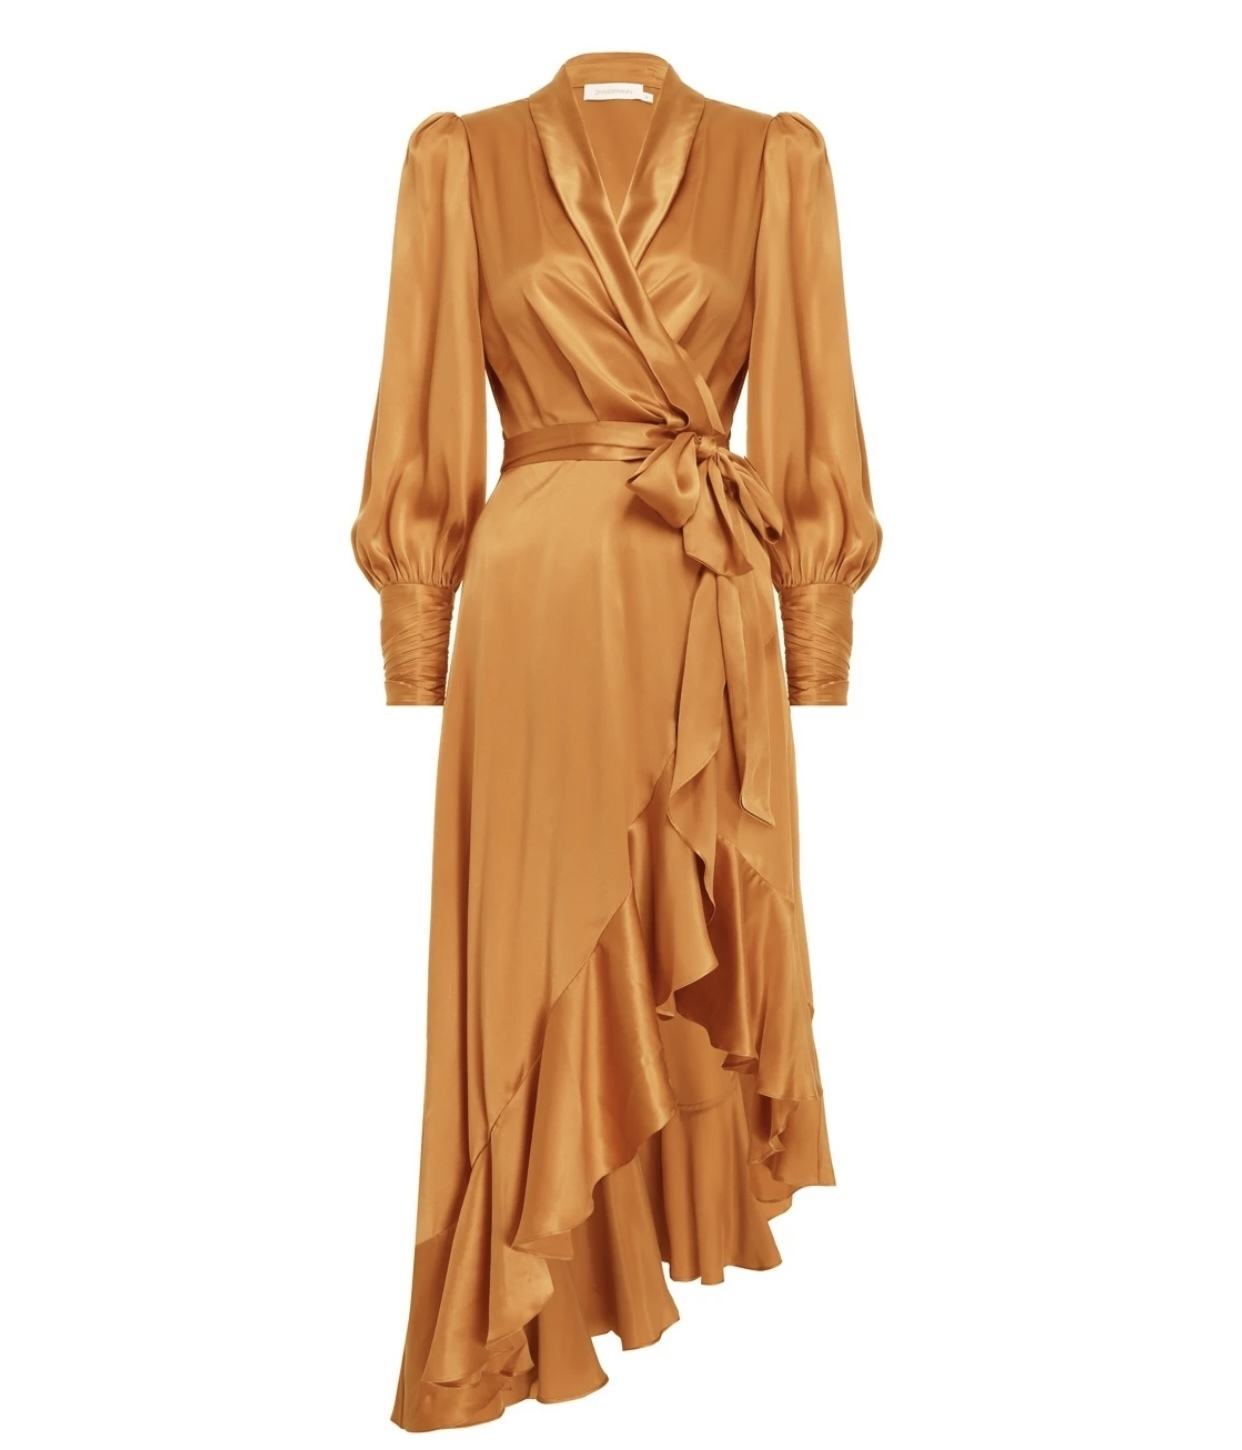 Buy: Silk Wrap Midi Dress - Mango Size 6